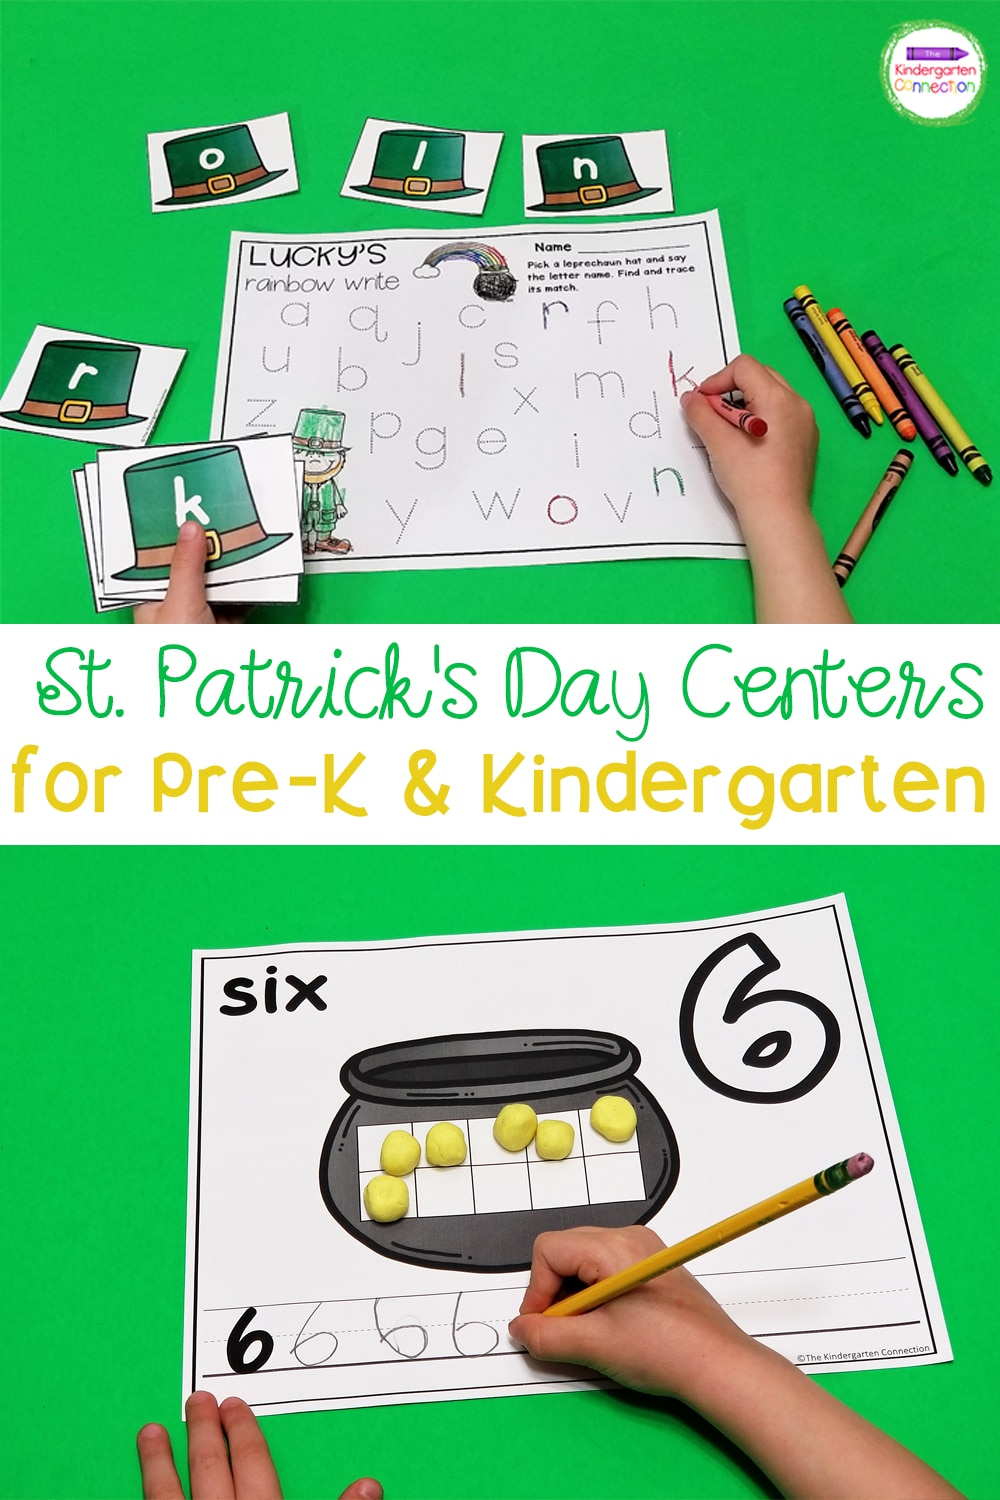 Grab these St. Patrick's Day Activities for Pre-K & Kindergarten and have your centers planned for you all month long!